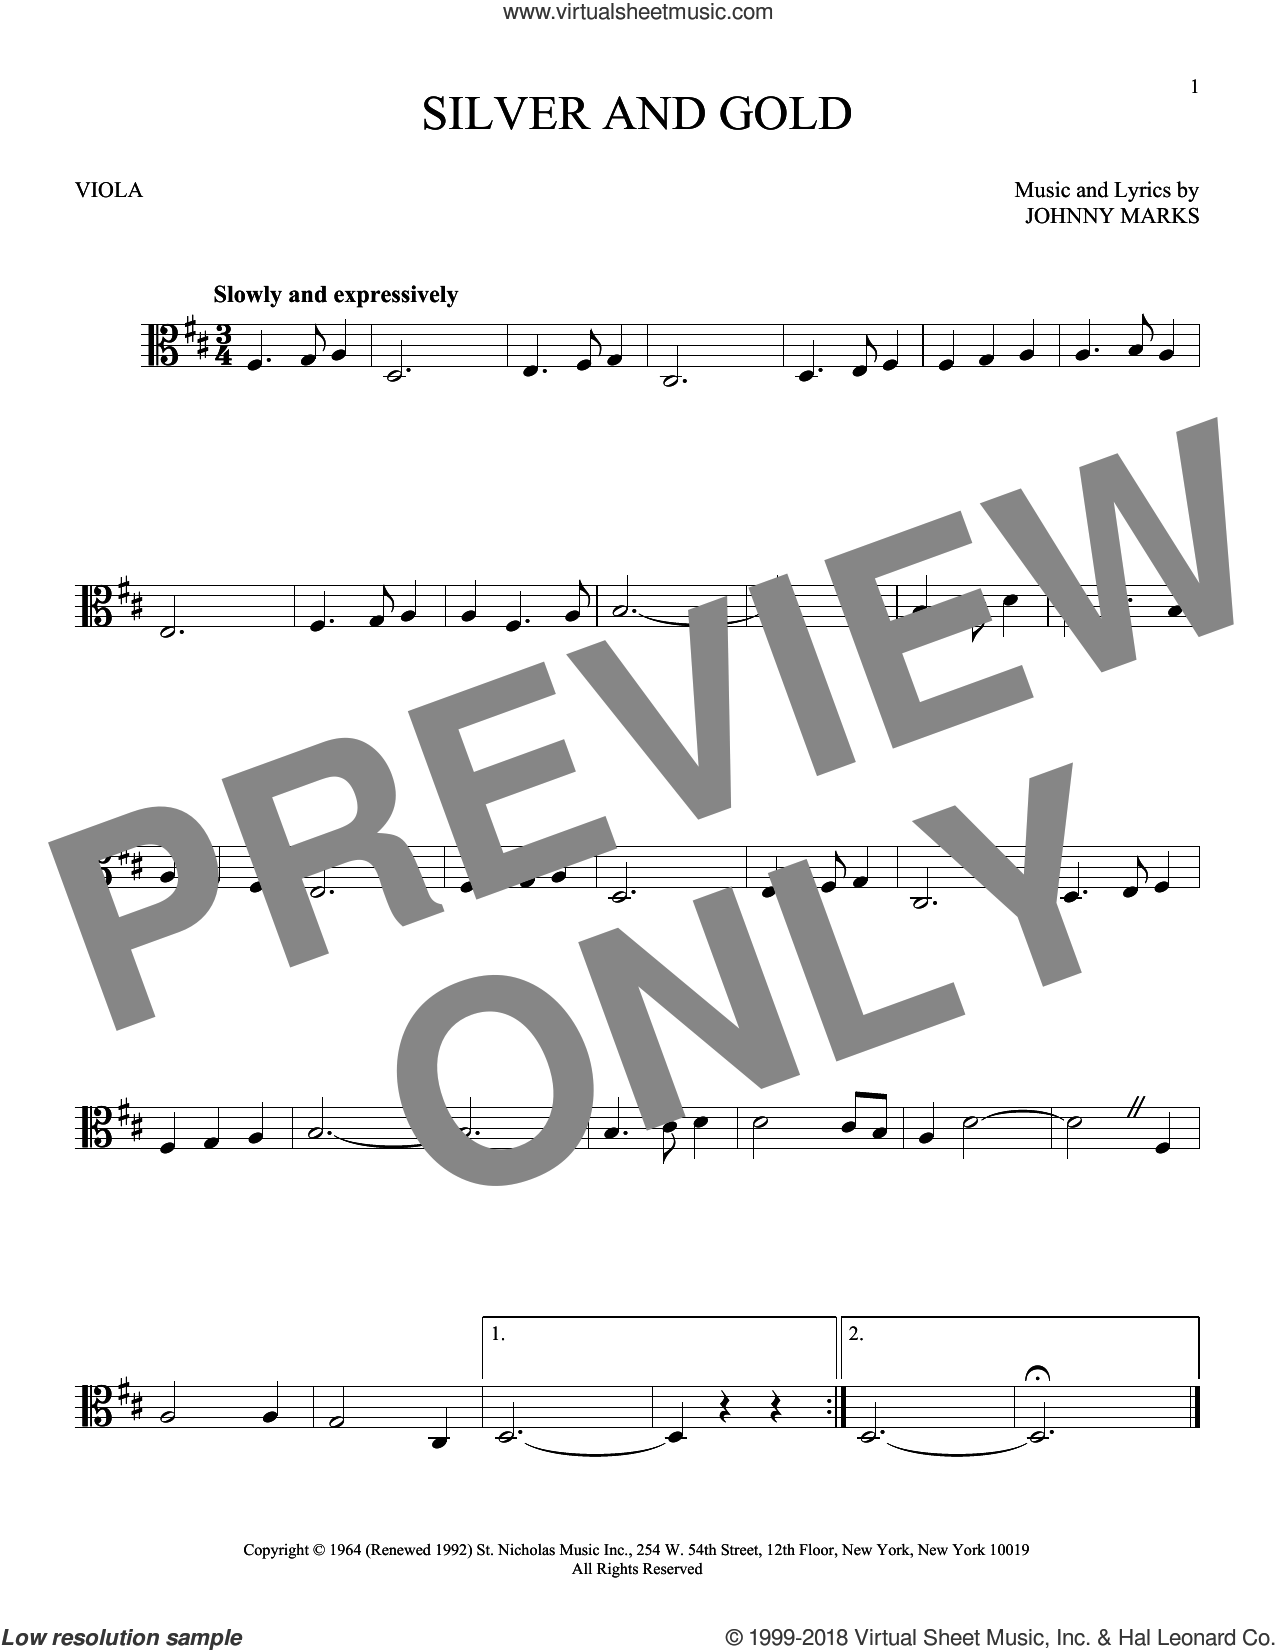 Silver And Gold sheet music for viola solo by Johnny Marks, intermediate skill level